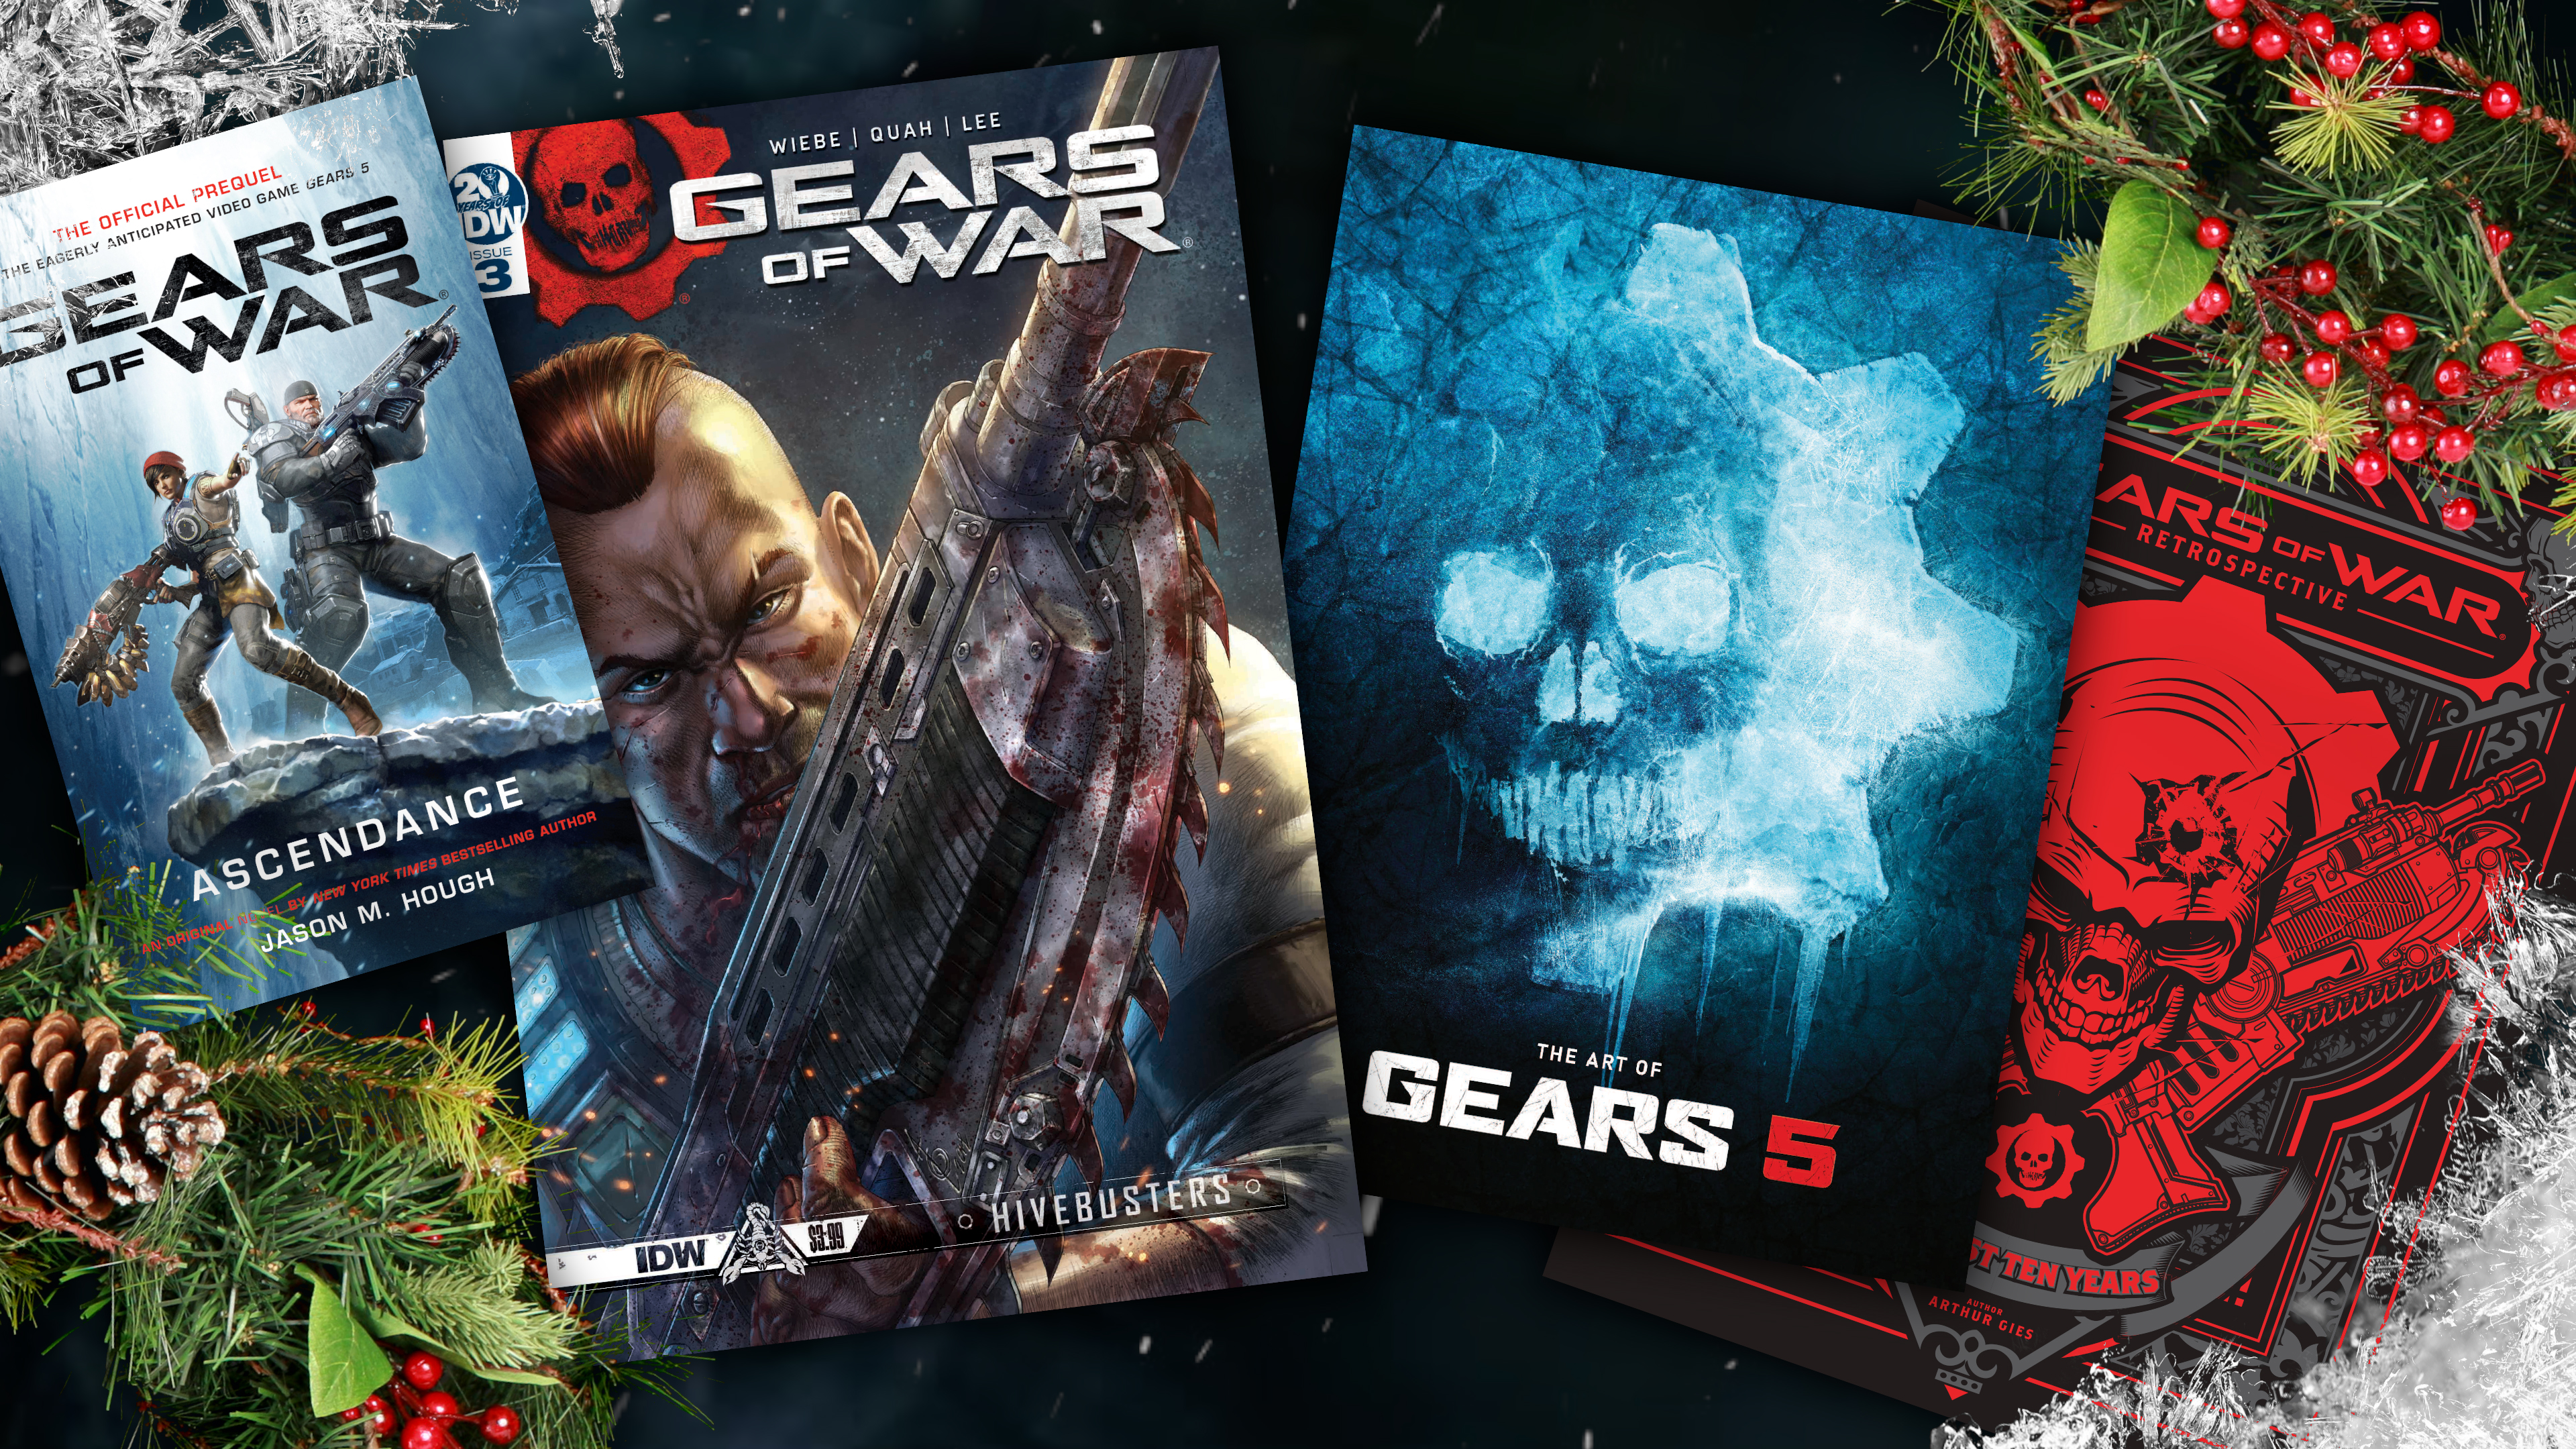 Various books about Gears of War universe